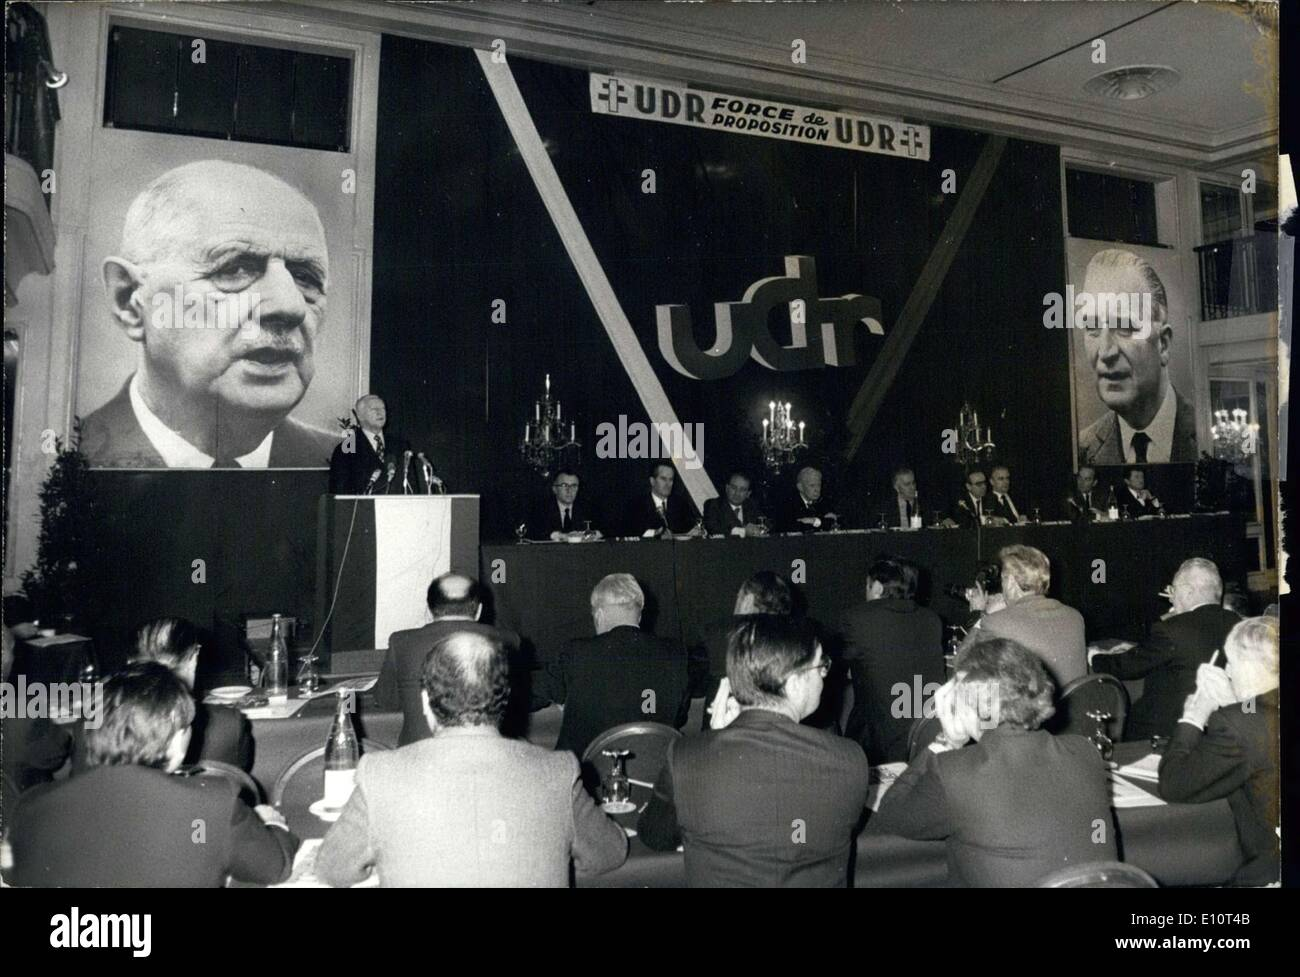 Jan. 19, 1974 - Meeting of Democrats of the Republic & Pierre Messmer. - Stock Image